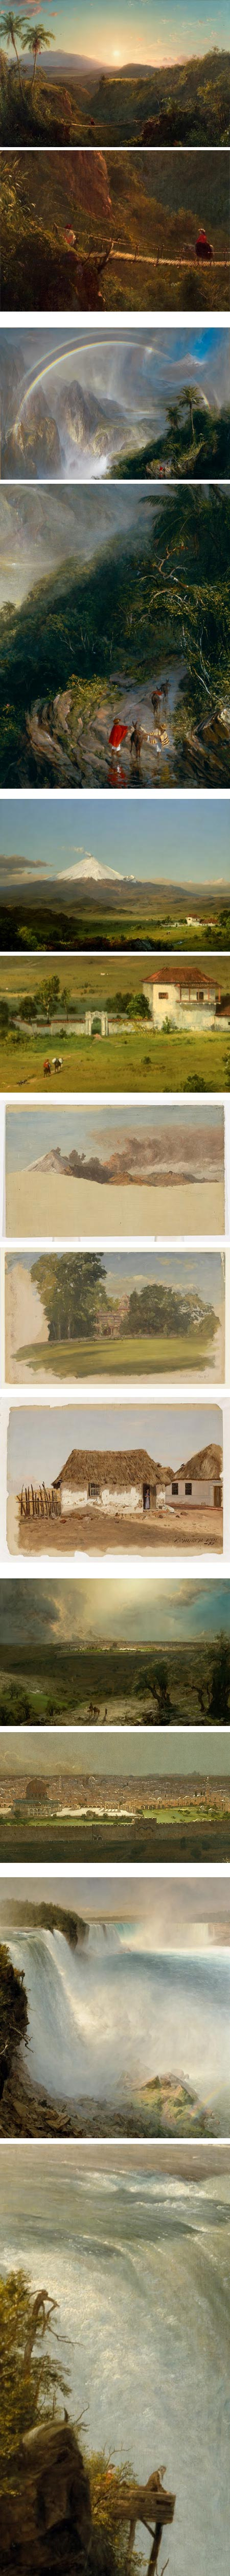 Frederic Edwin Church on Google Art Project